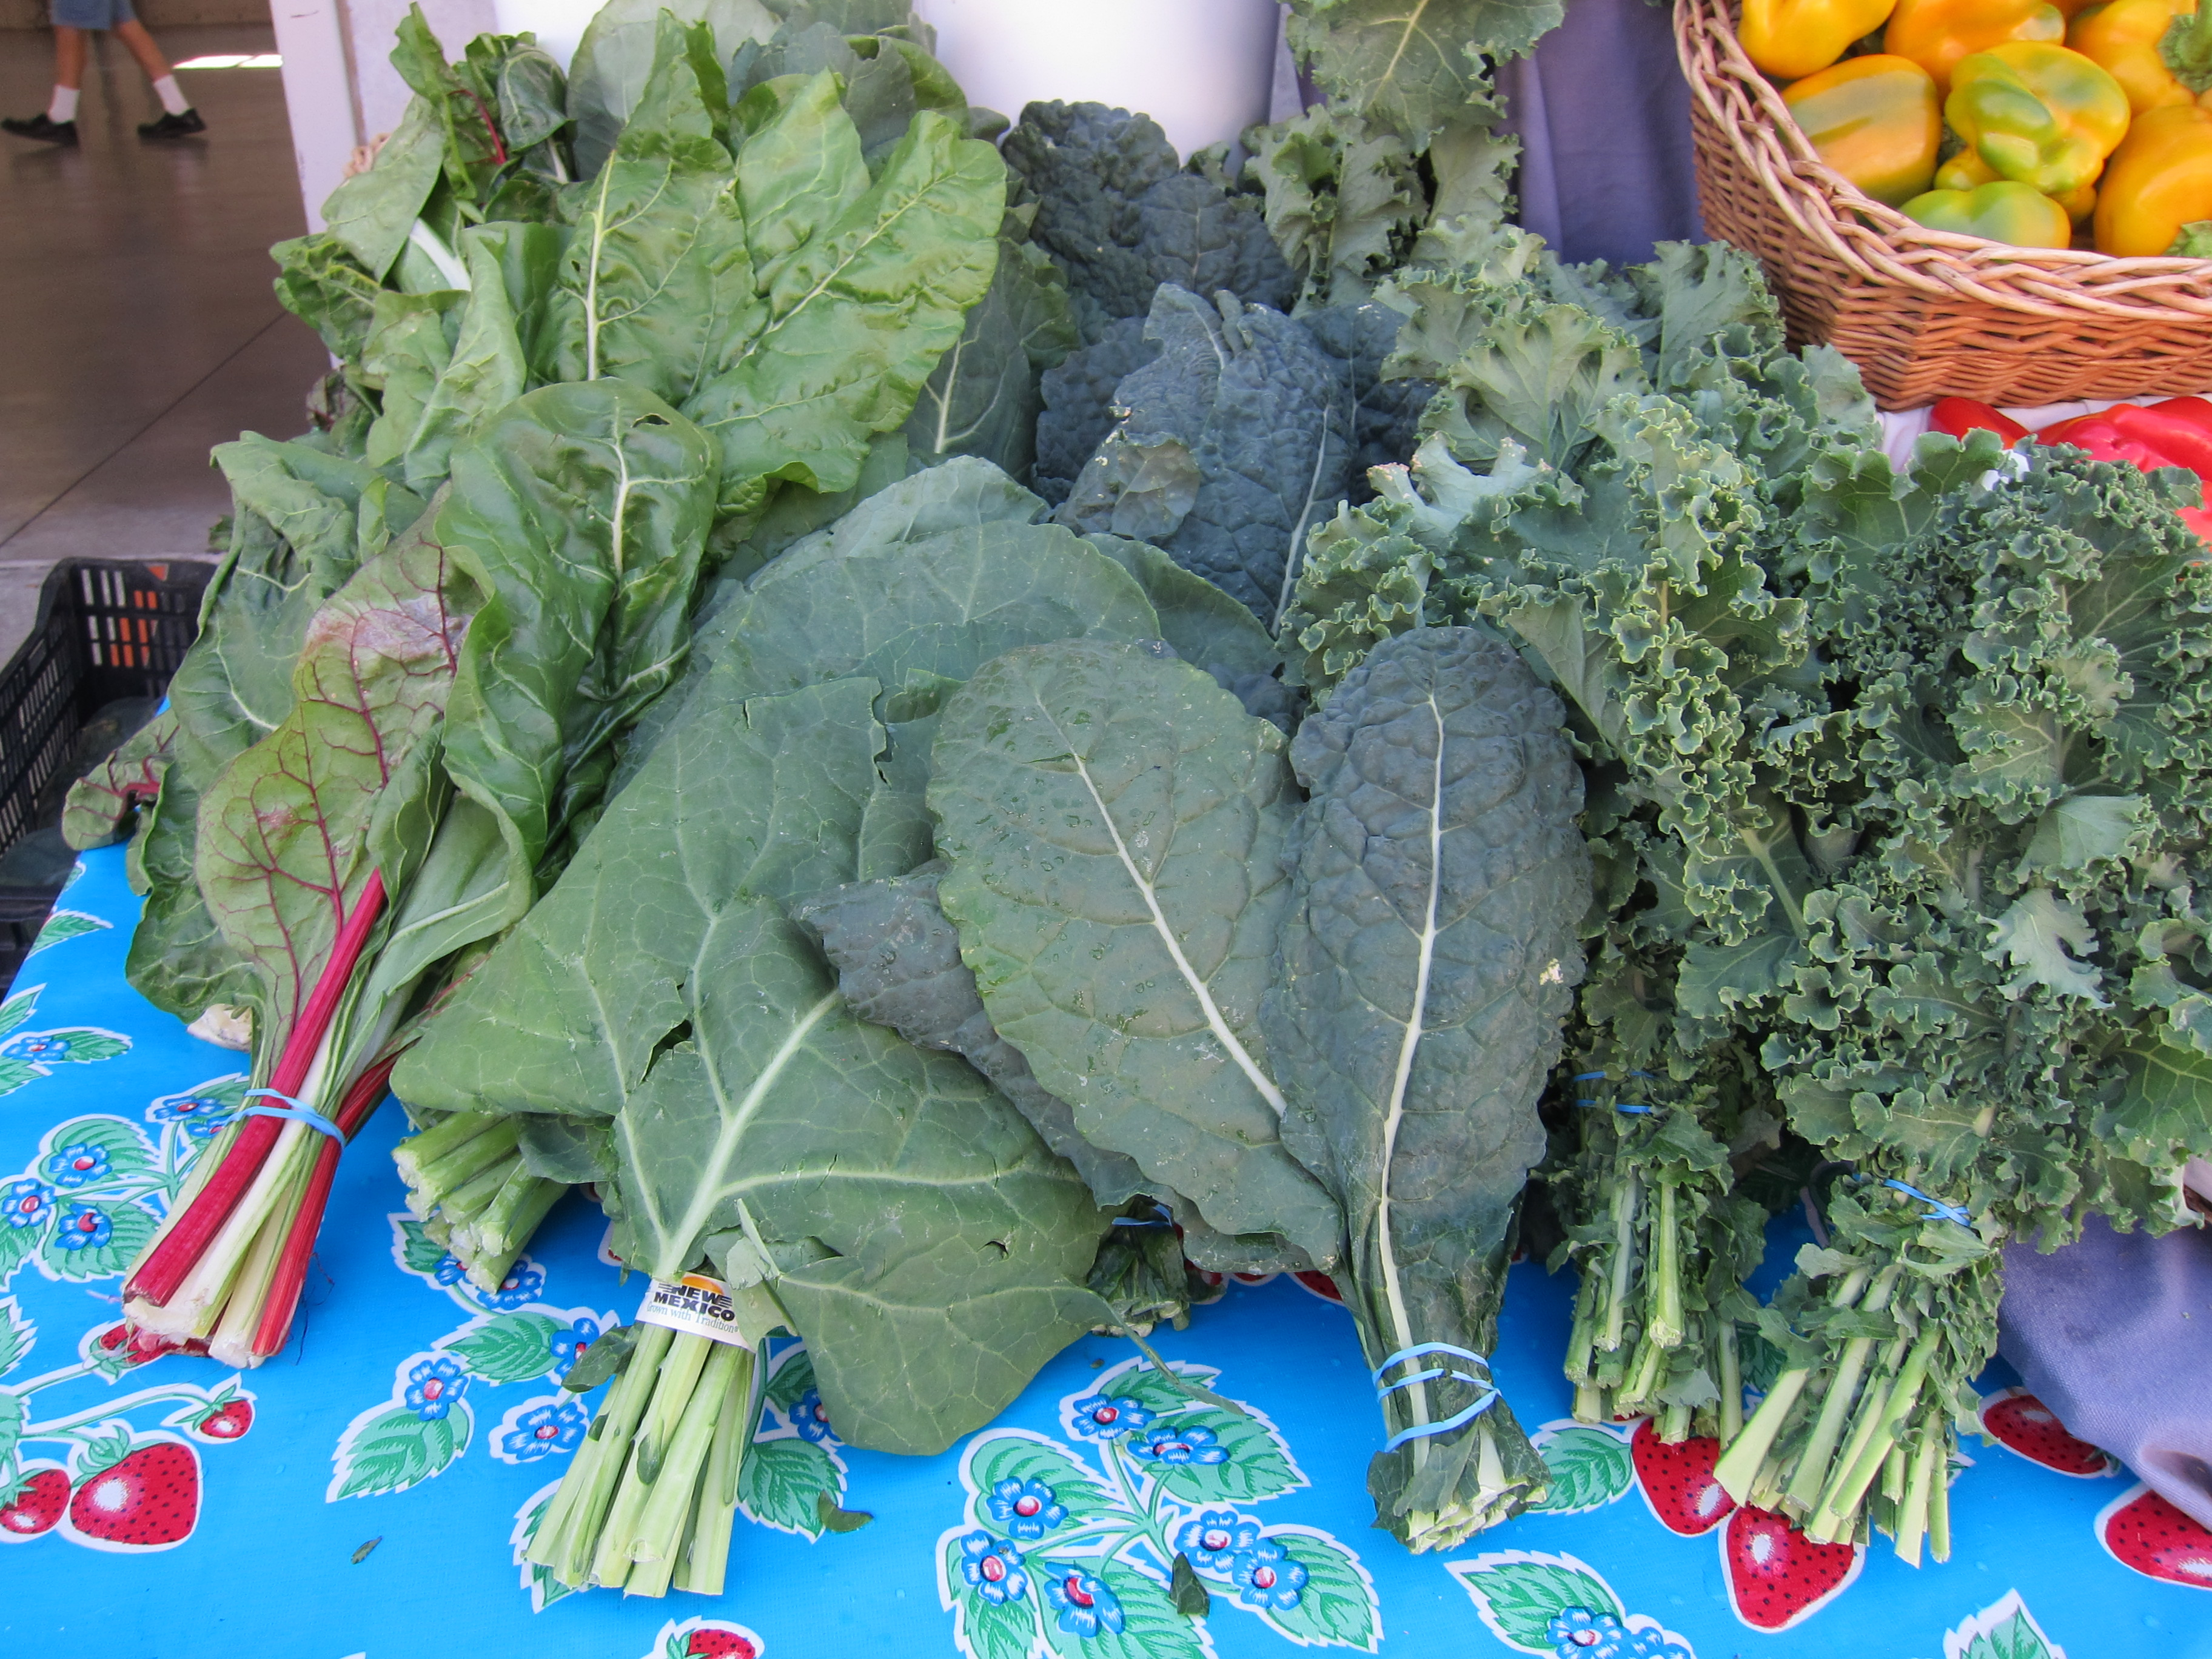 Discover New Greens at Local Growers' Markets